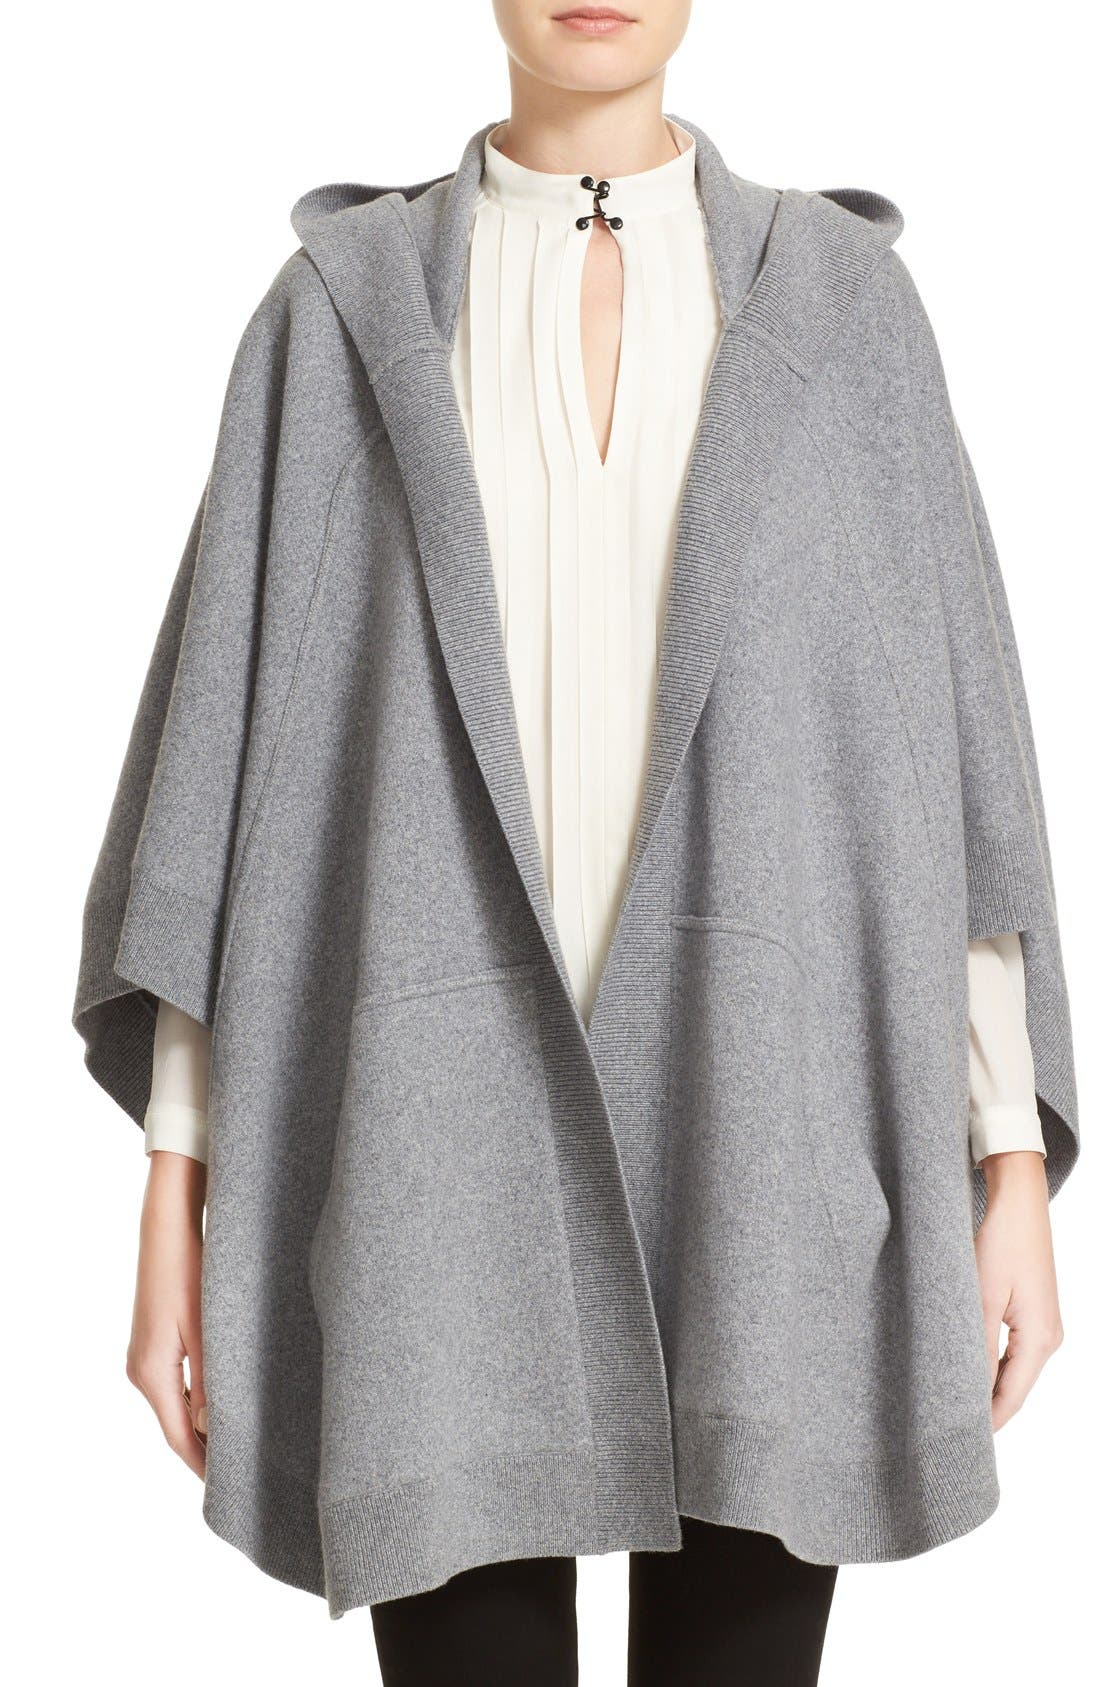 BURBERRY Carla Hooded Knit Poncho